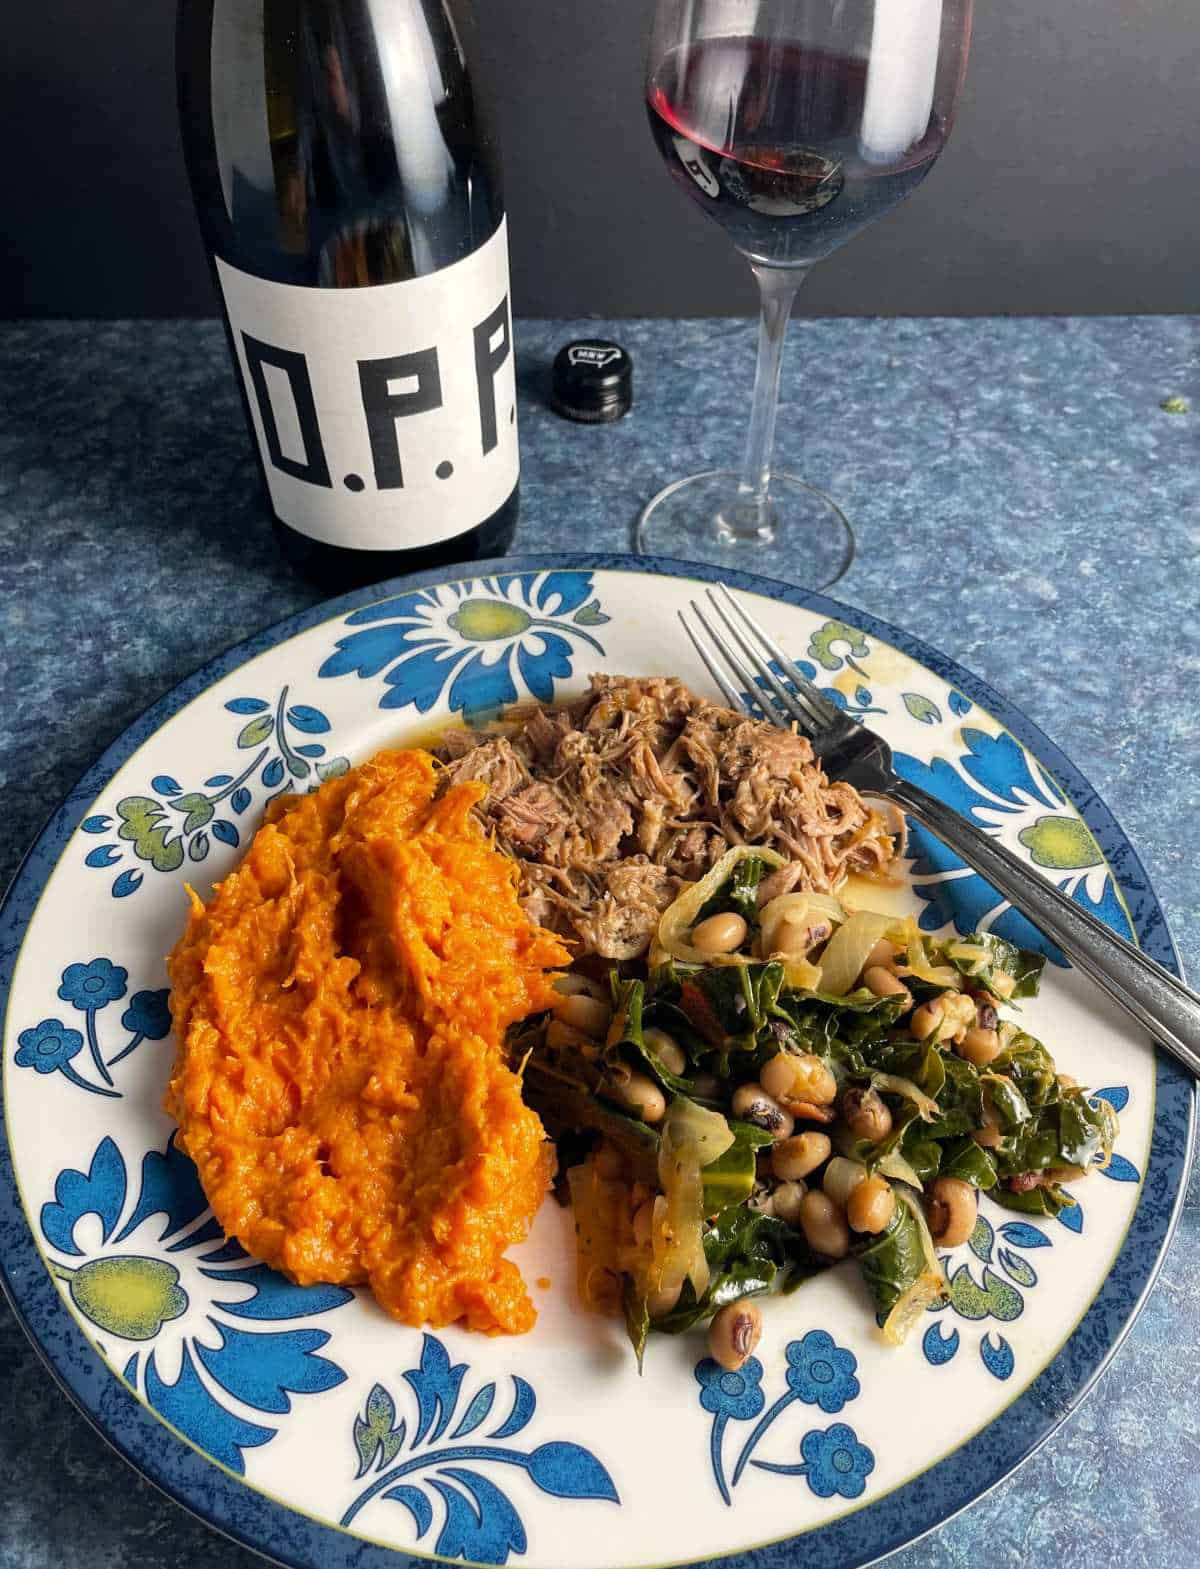 black-eyed peas with collard greens on a plate with pulled pork and sweet potatoes. Served with a red wine.